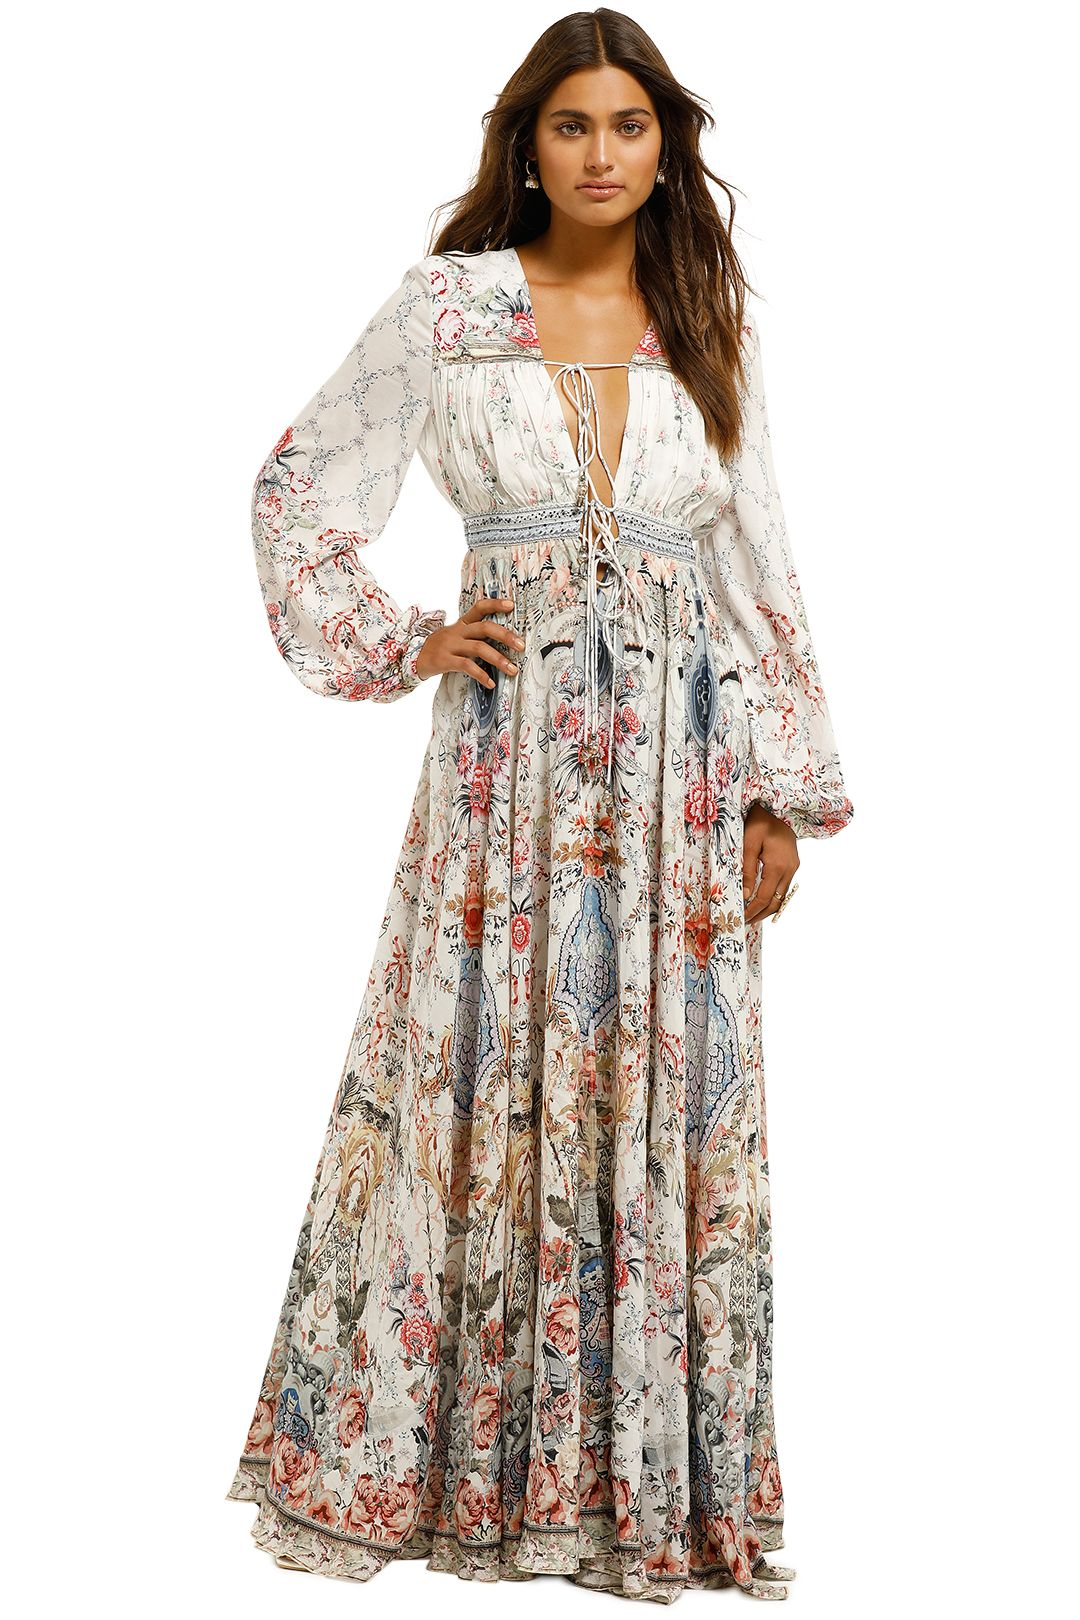 Camilla-Peasant-Dress-with-Tie-Front-Souther-Bell-Front